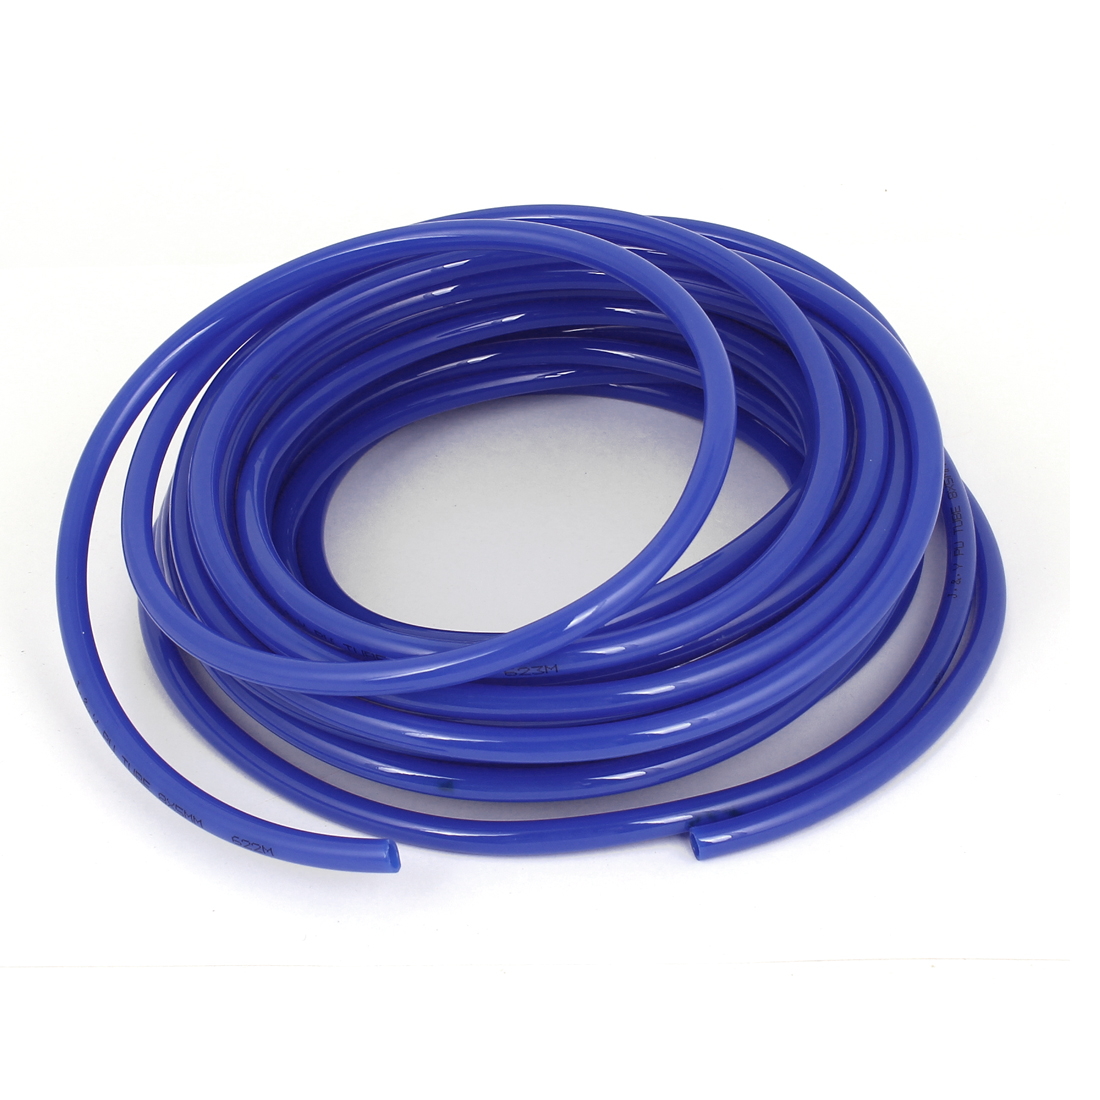 PU Flexible Air Tubing Pneumatic Pipe Tube Hose Blue 8x5mm 1.5mm Thickness 12M